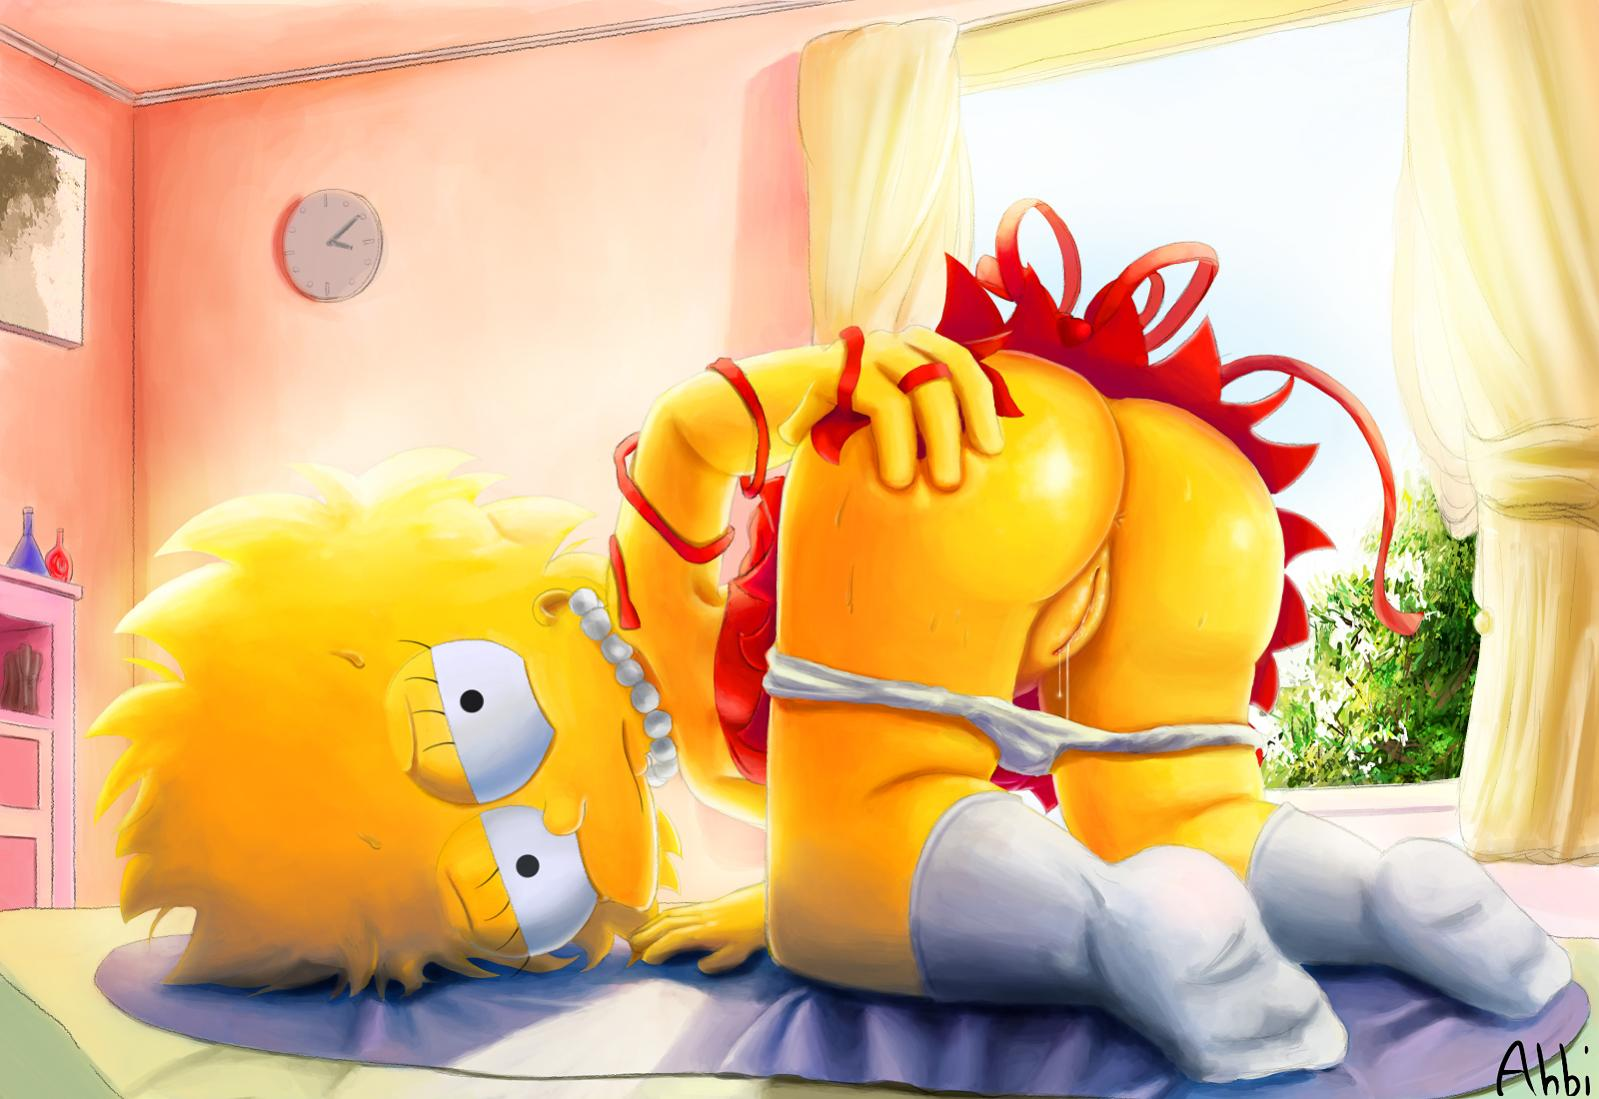 Nackt und bart simpsons lisa The Simpsons: